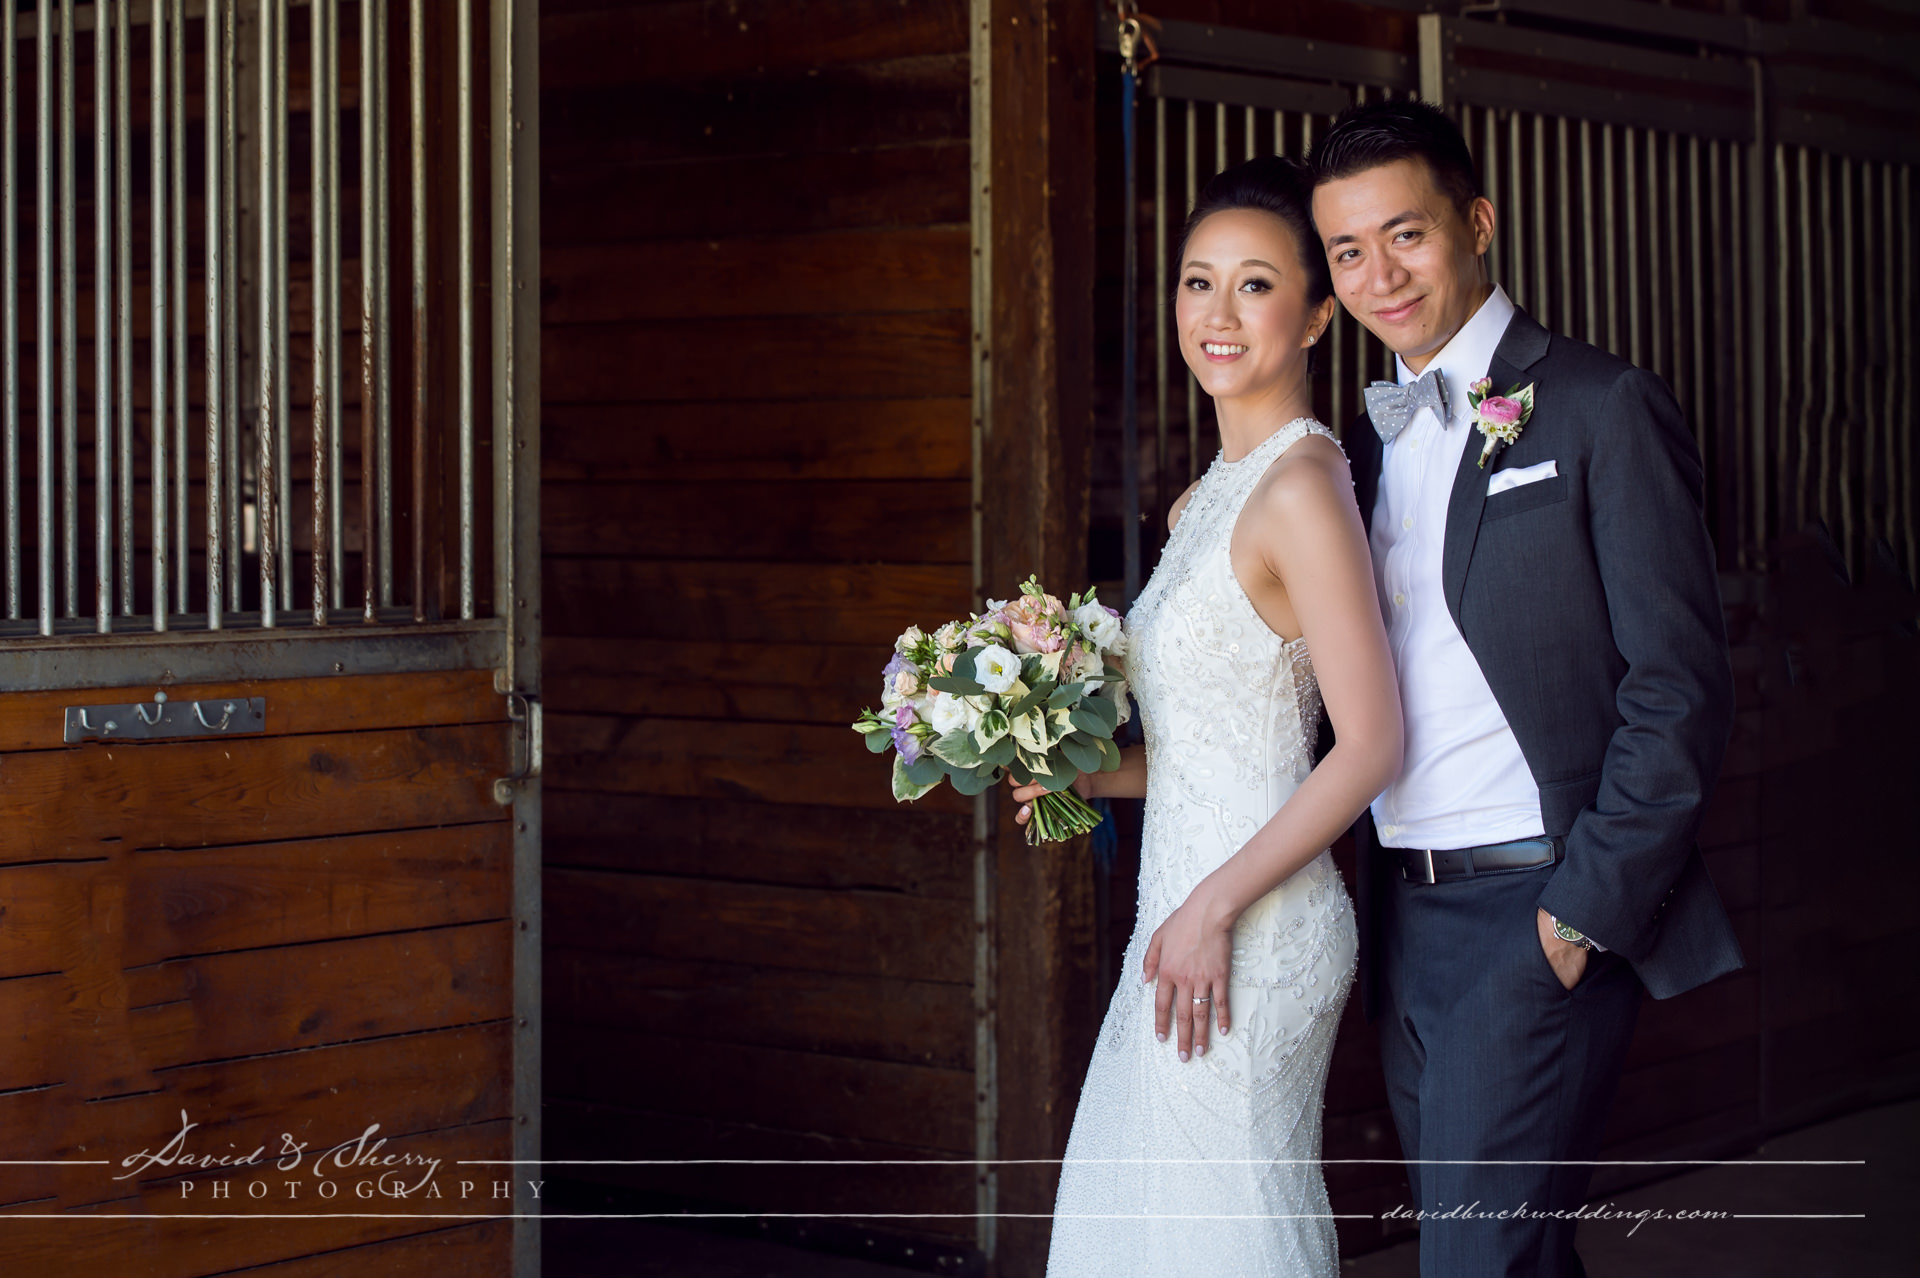 waterstone-estate-wedding-david-sherry-photography-simon-crystal-001